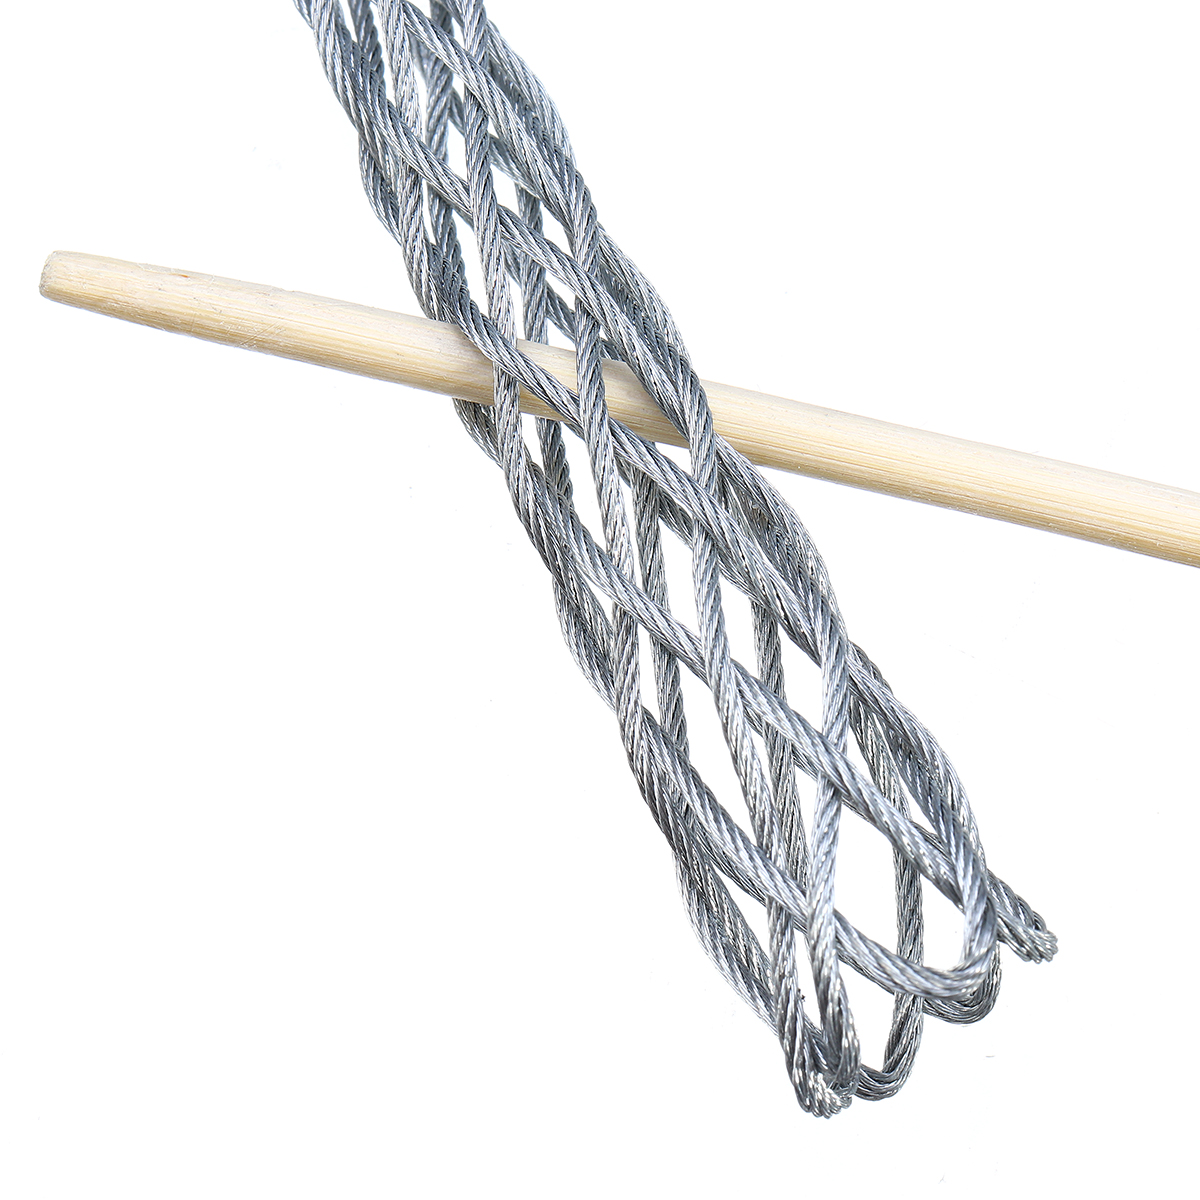 High Quality Stainless Steel Cable Pulling Socks Telstra NBN Tools Colour Code Cable Puller Wire Gri